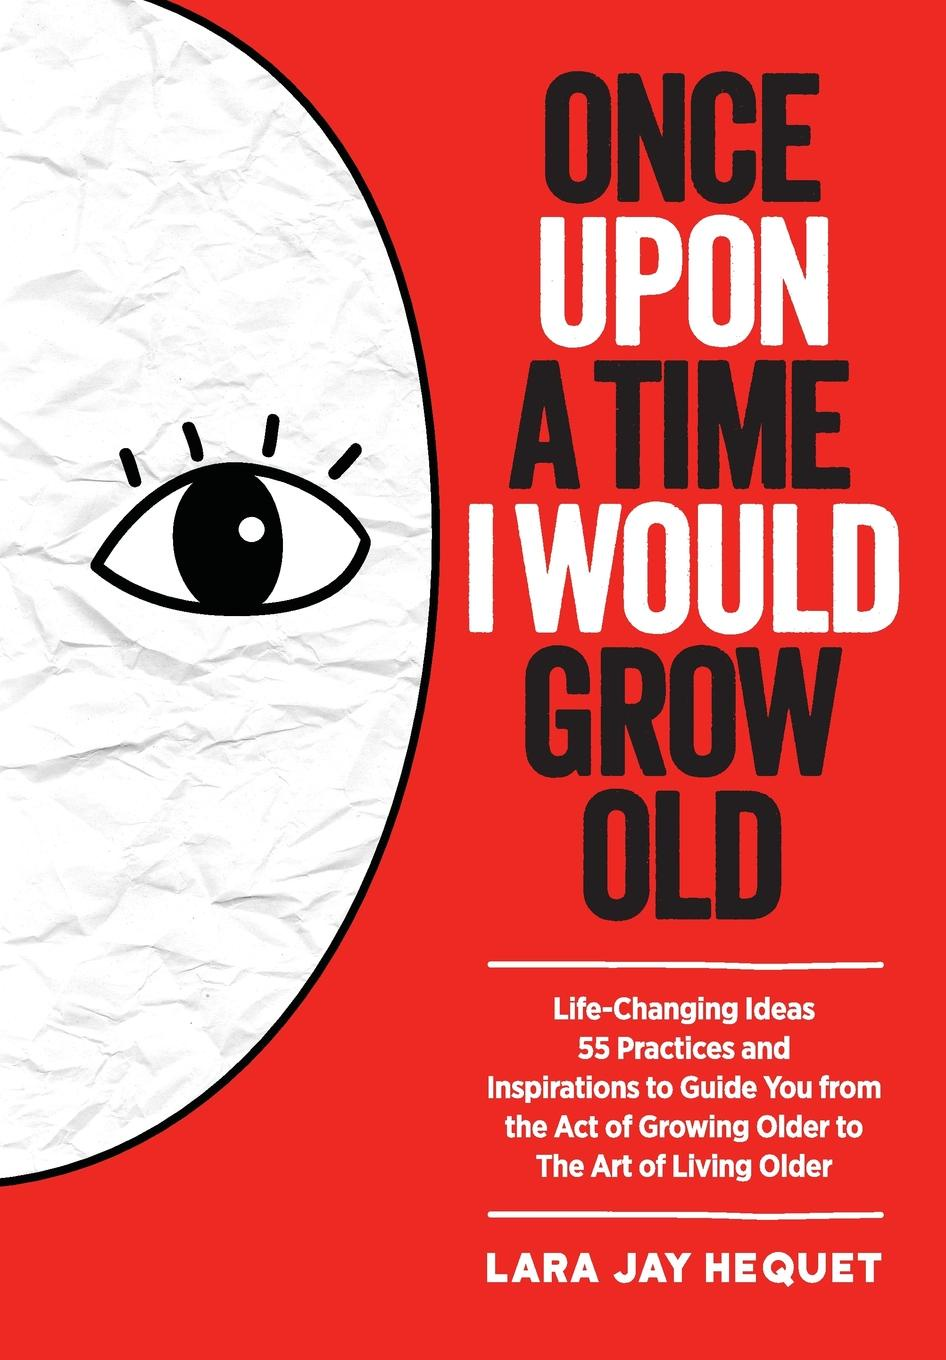 Lara Jay Hequet Once Upon A Time I Would Grow Old. Life-Changing Ideas, 55 Practices and Inspirations to Guide You from the Act of Growing Older to The Art of Living Older jason vitug you only live once the roadmap to financial wellness and a purposeful life